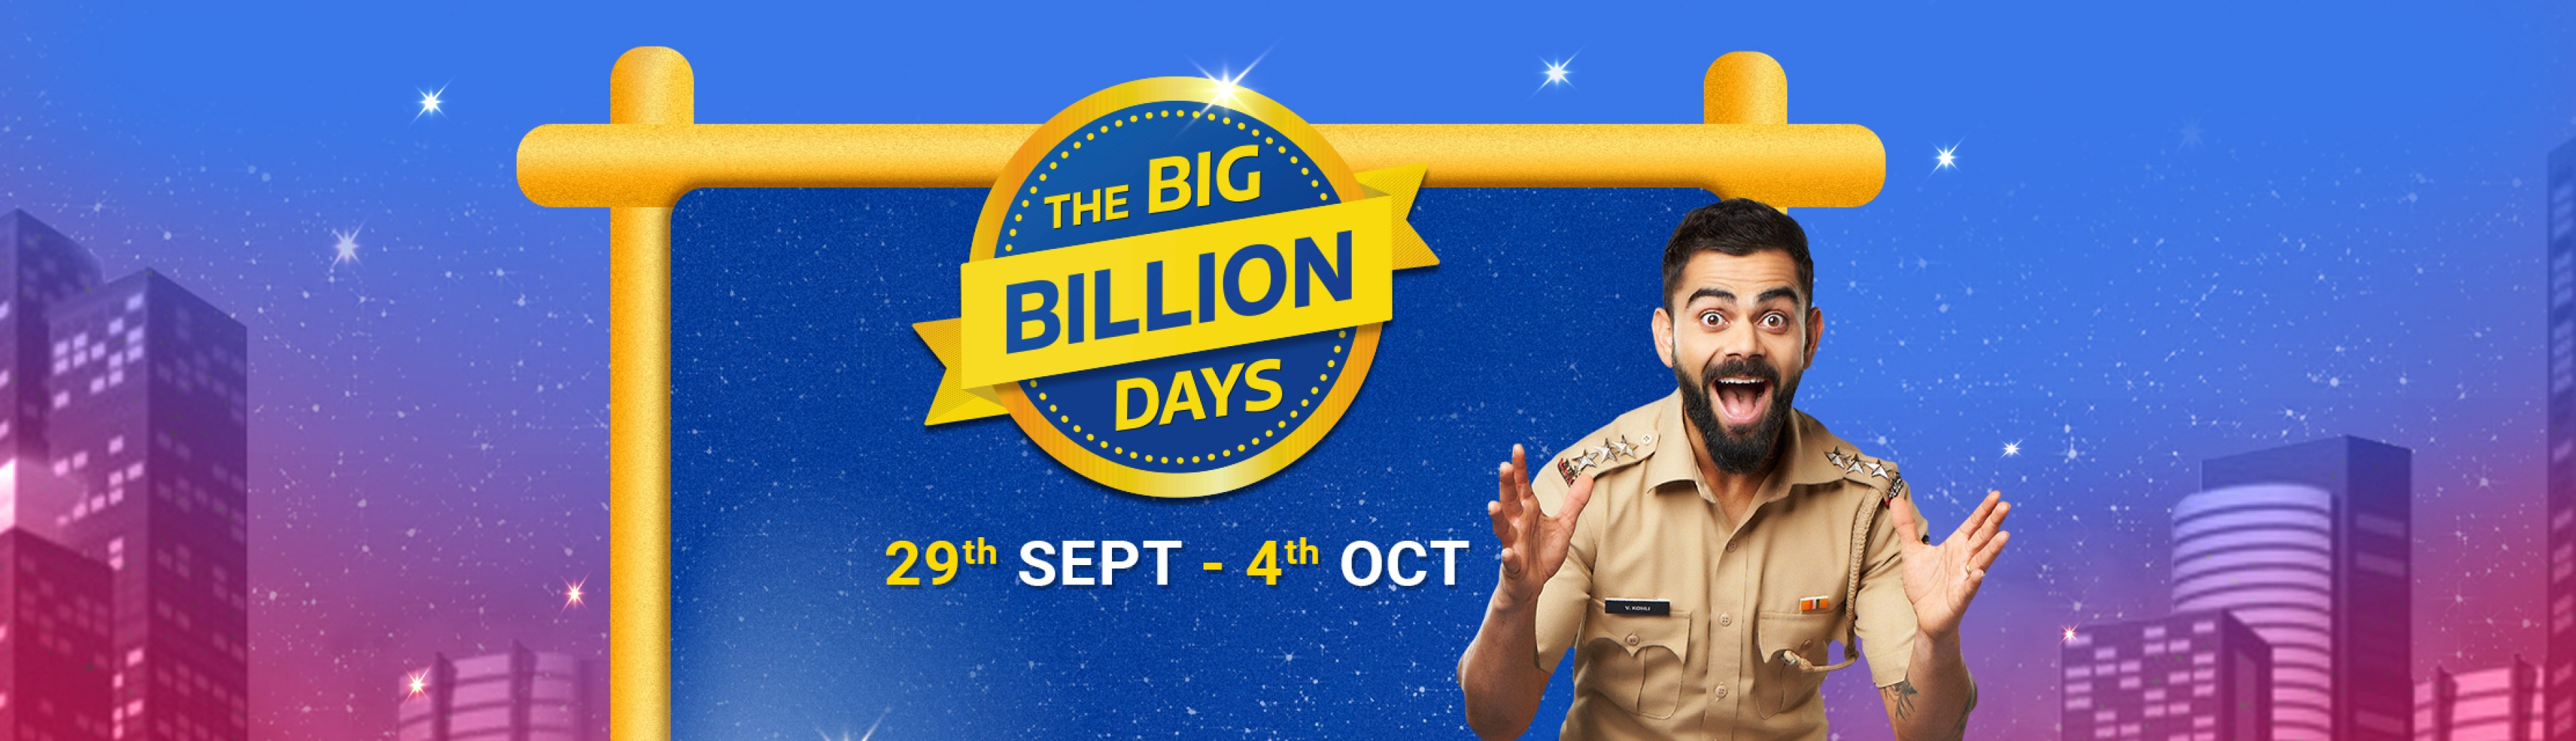 40-80% off on The Flipkart The Big Billion Days Sale